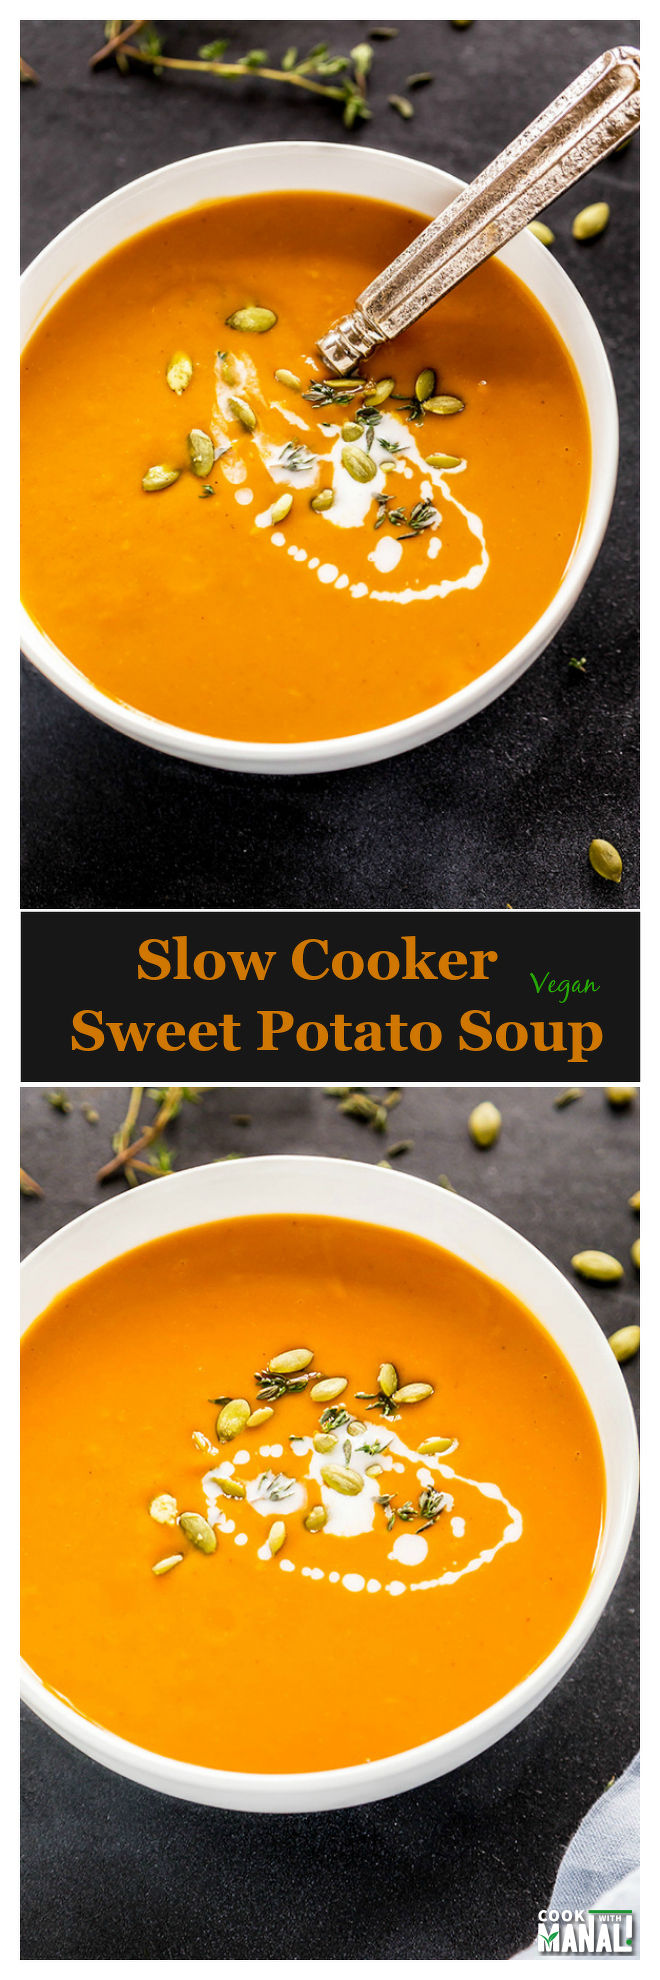 slow-cooker-sweet-potato-soup-collage